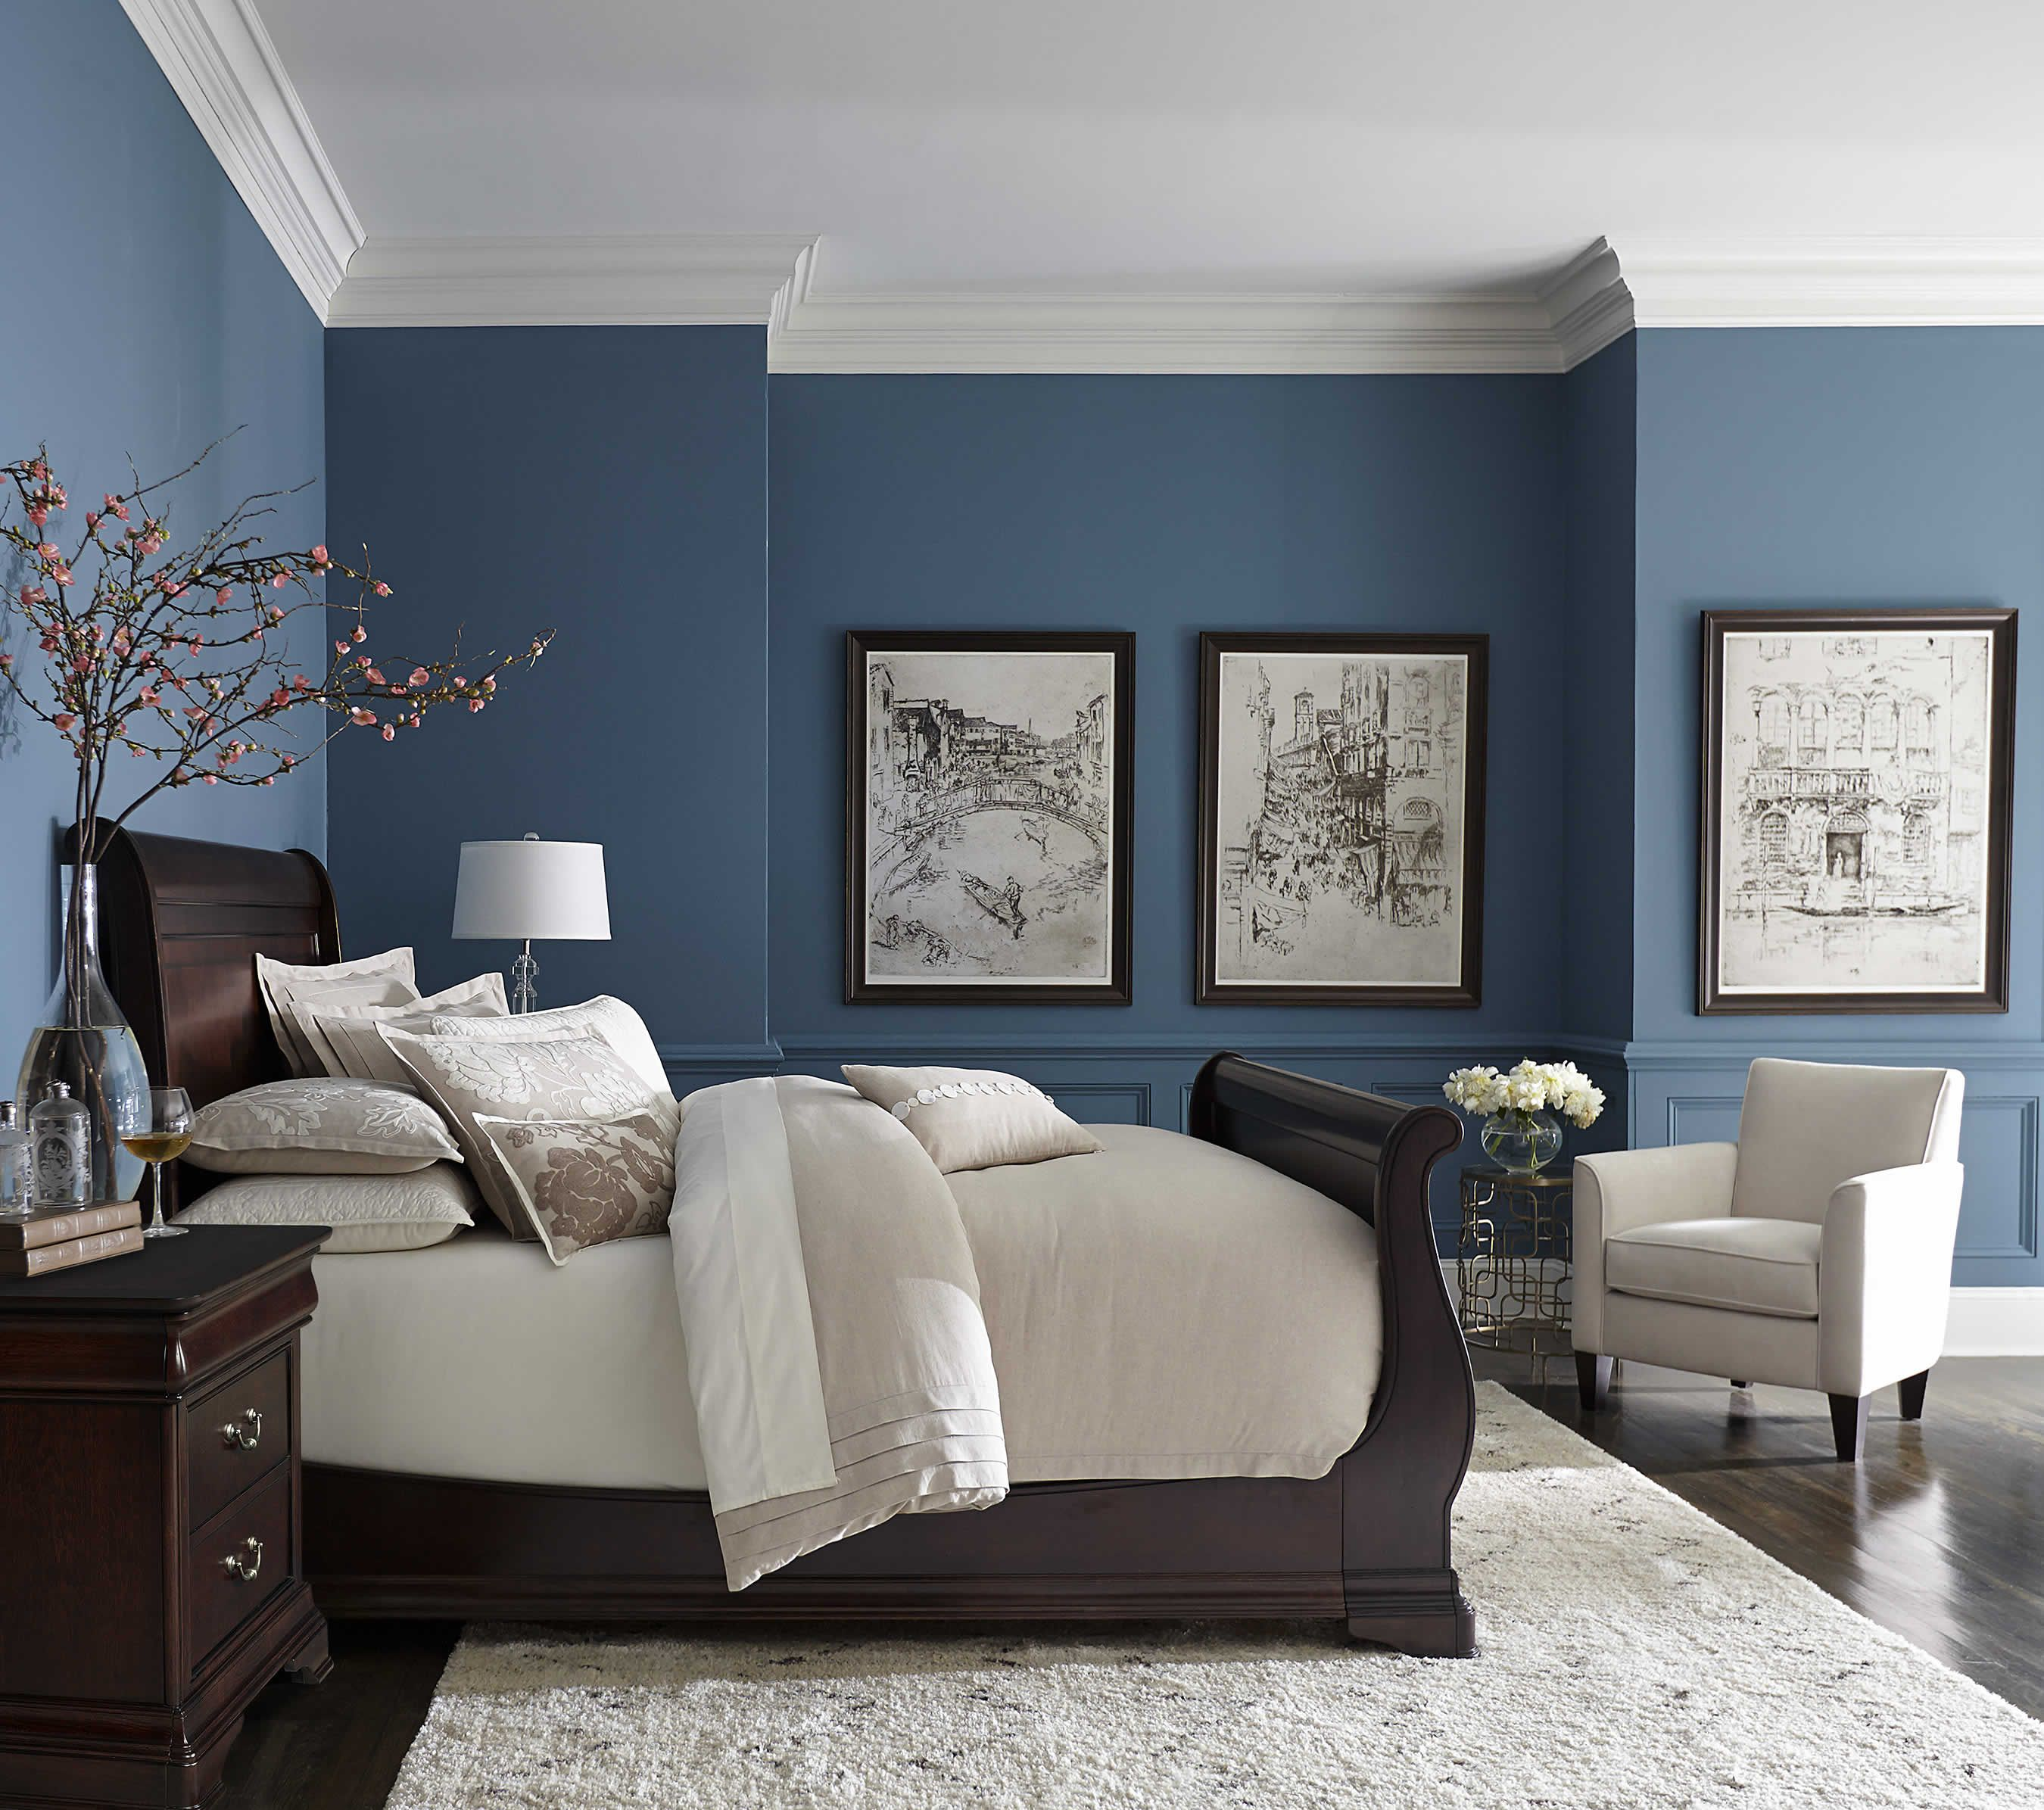 Best Pretty Blue Color With White Crown Molding Small Master Bedroom Remodel Bedroom Master 400 x 300